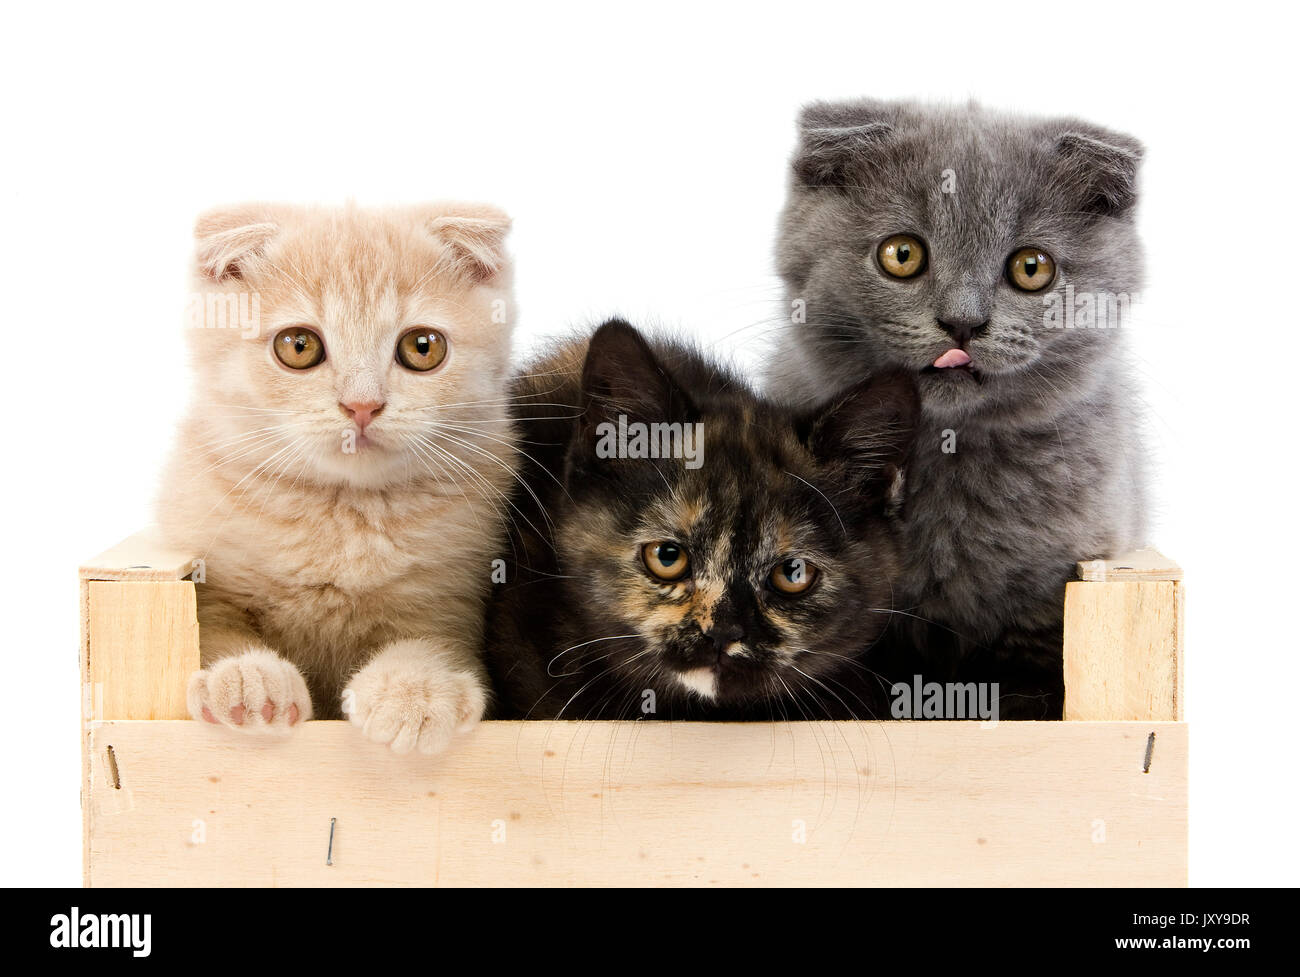 BLACK TORTOISE SHELL BRITISH SHORTHAIR WITH BLUE AND CREAM